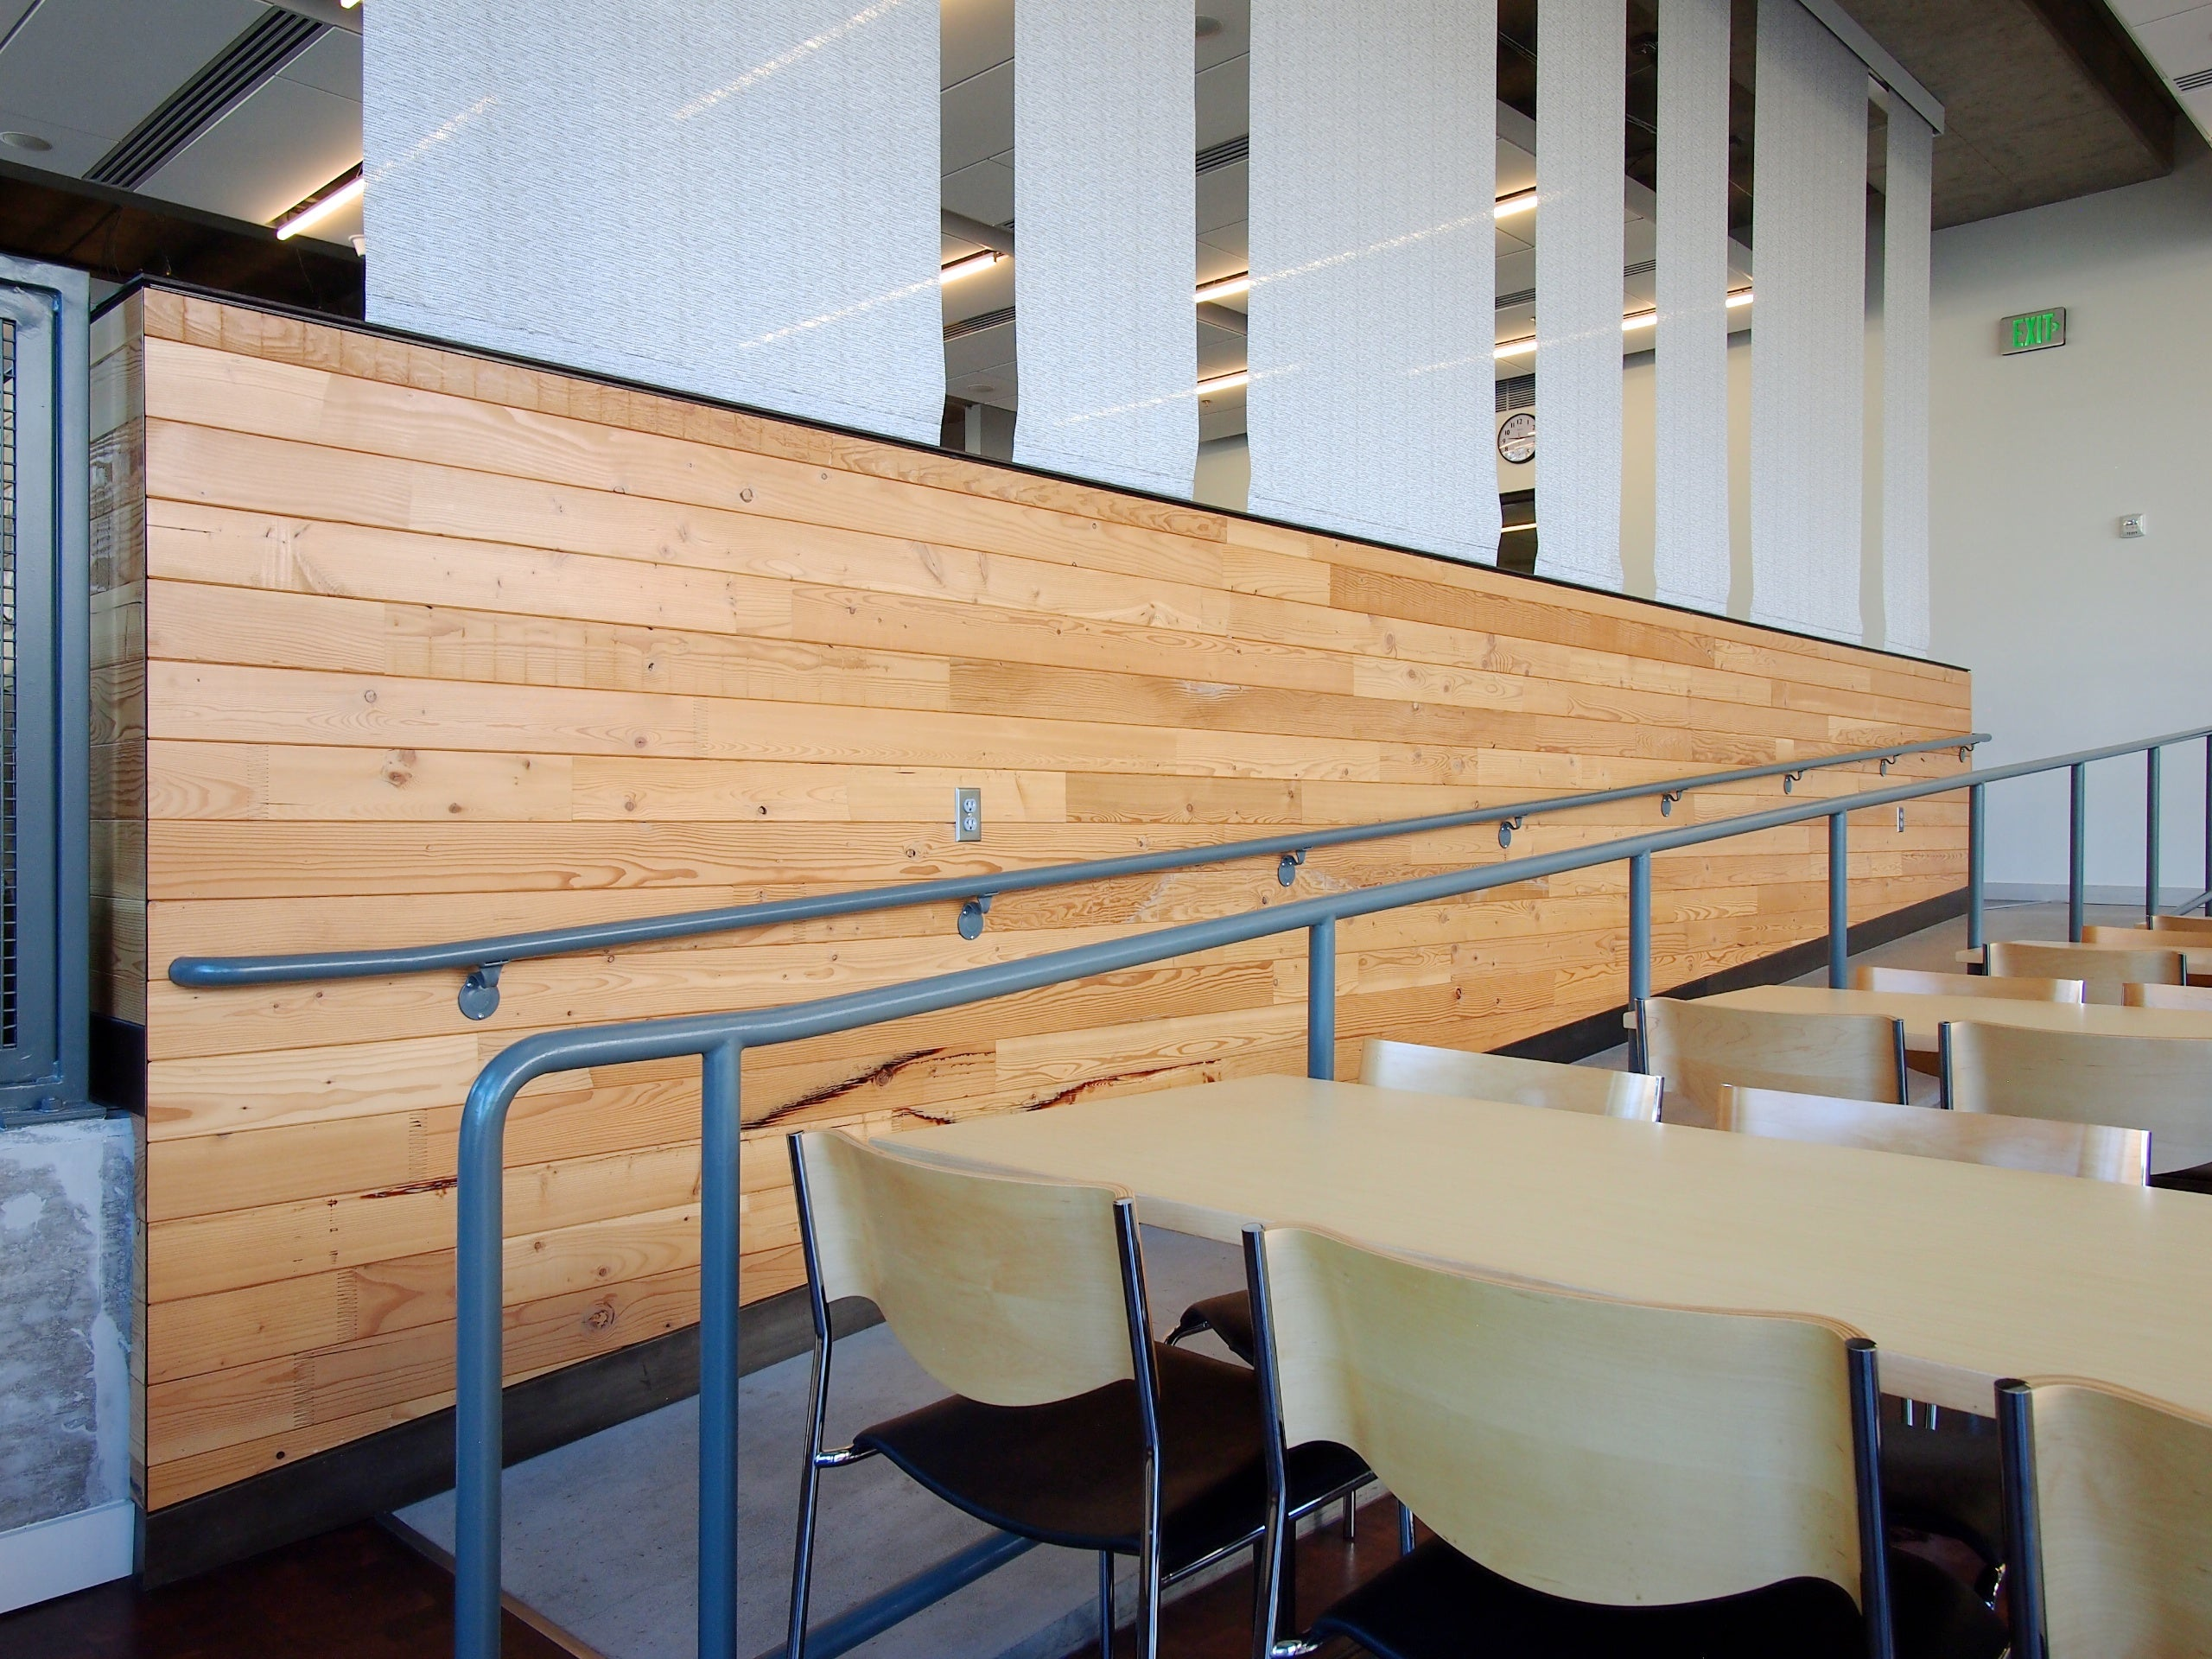 Portland Cladding, Clear | The NW School, Seattle, WA